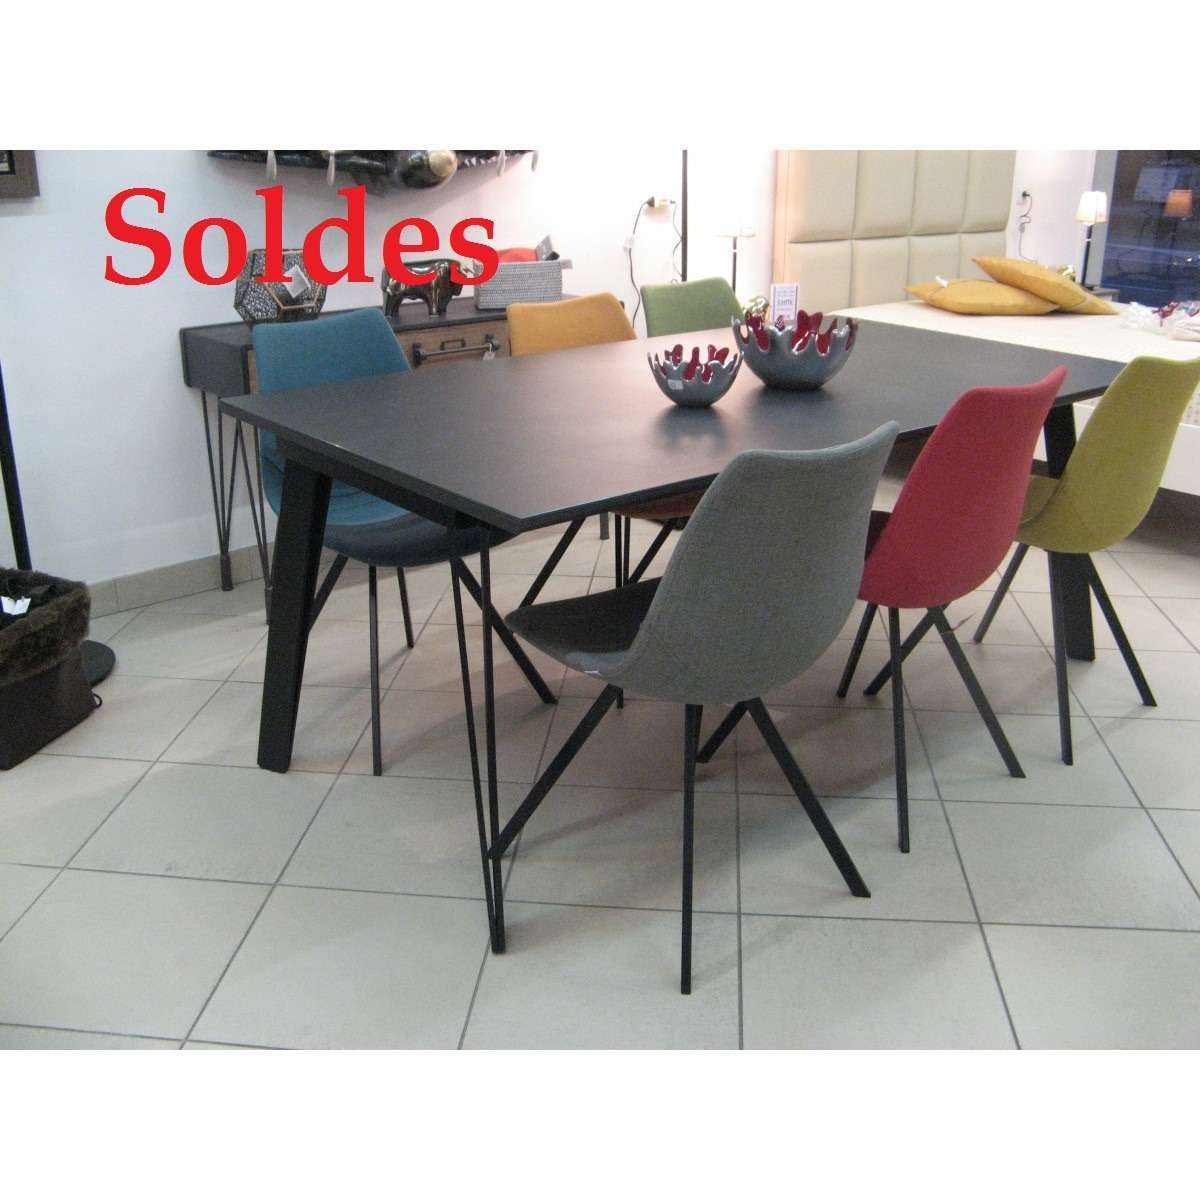 Solde Table C Ramique 180x100